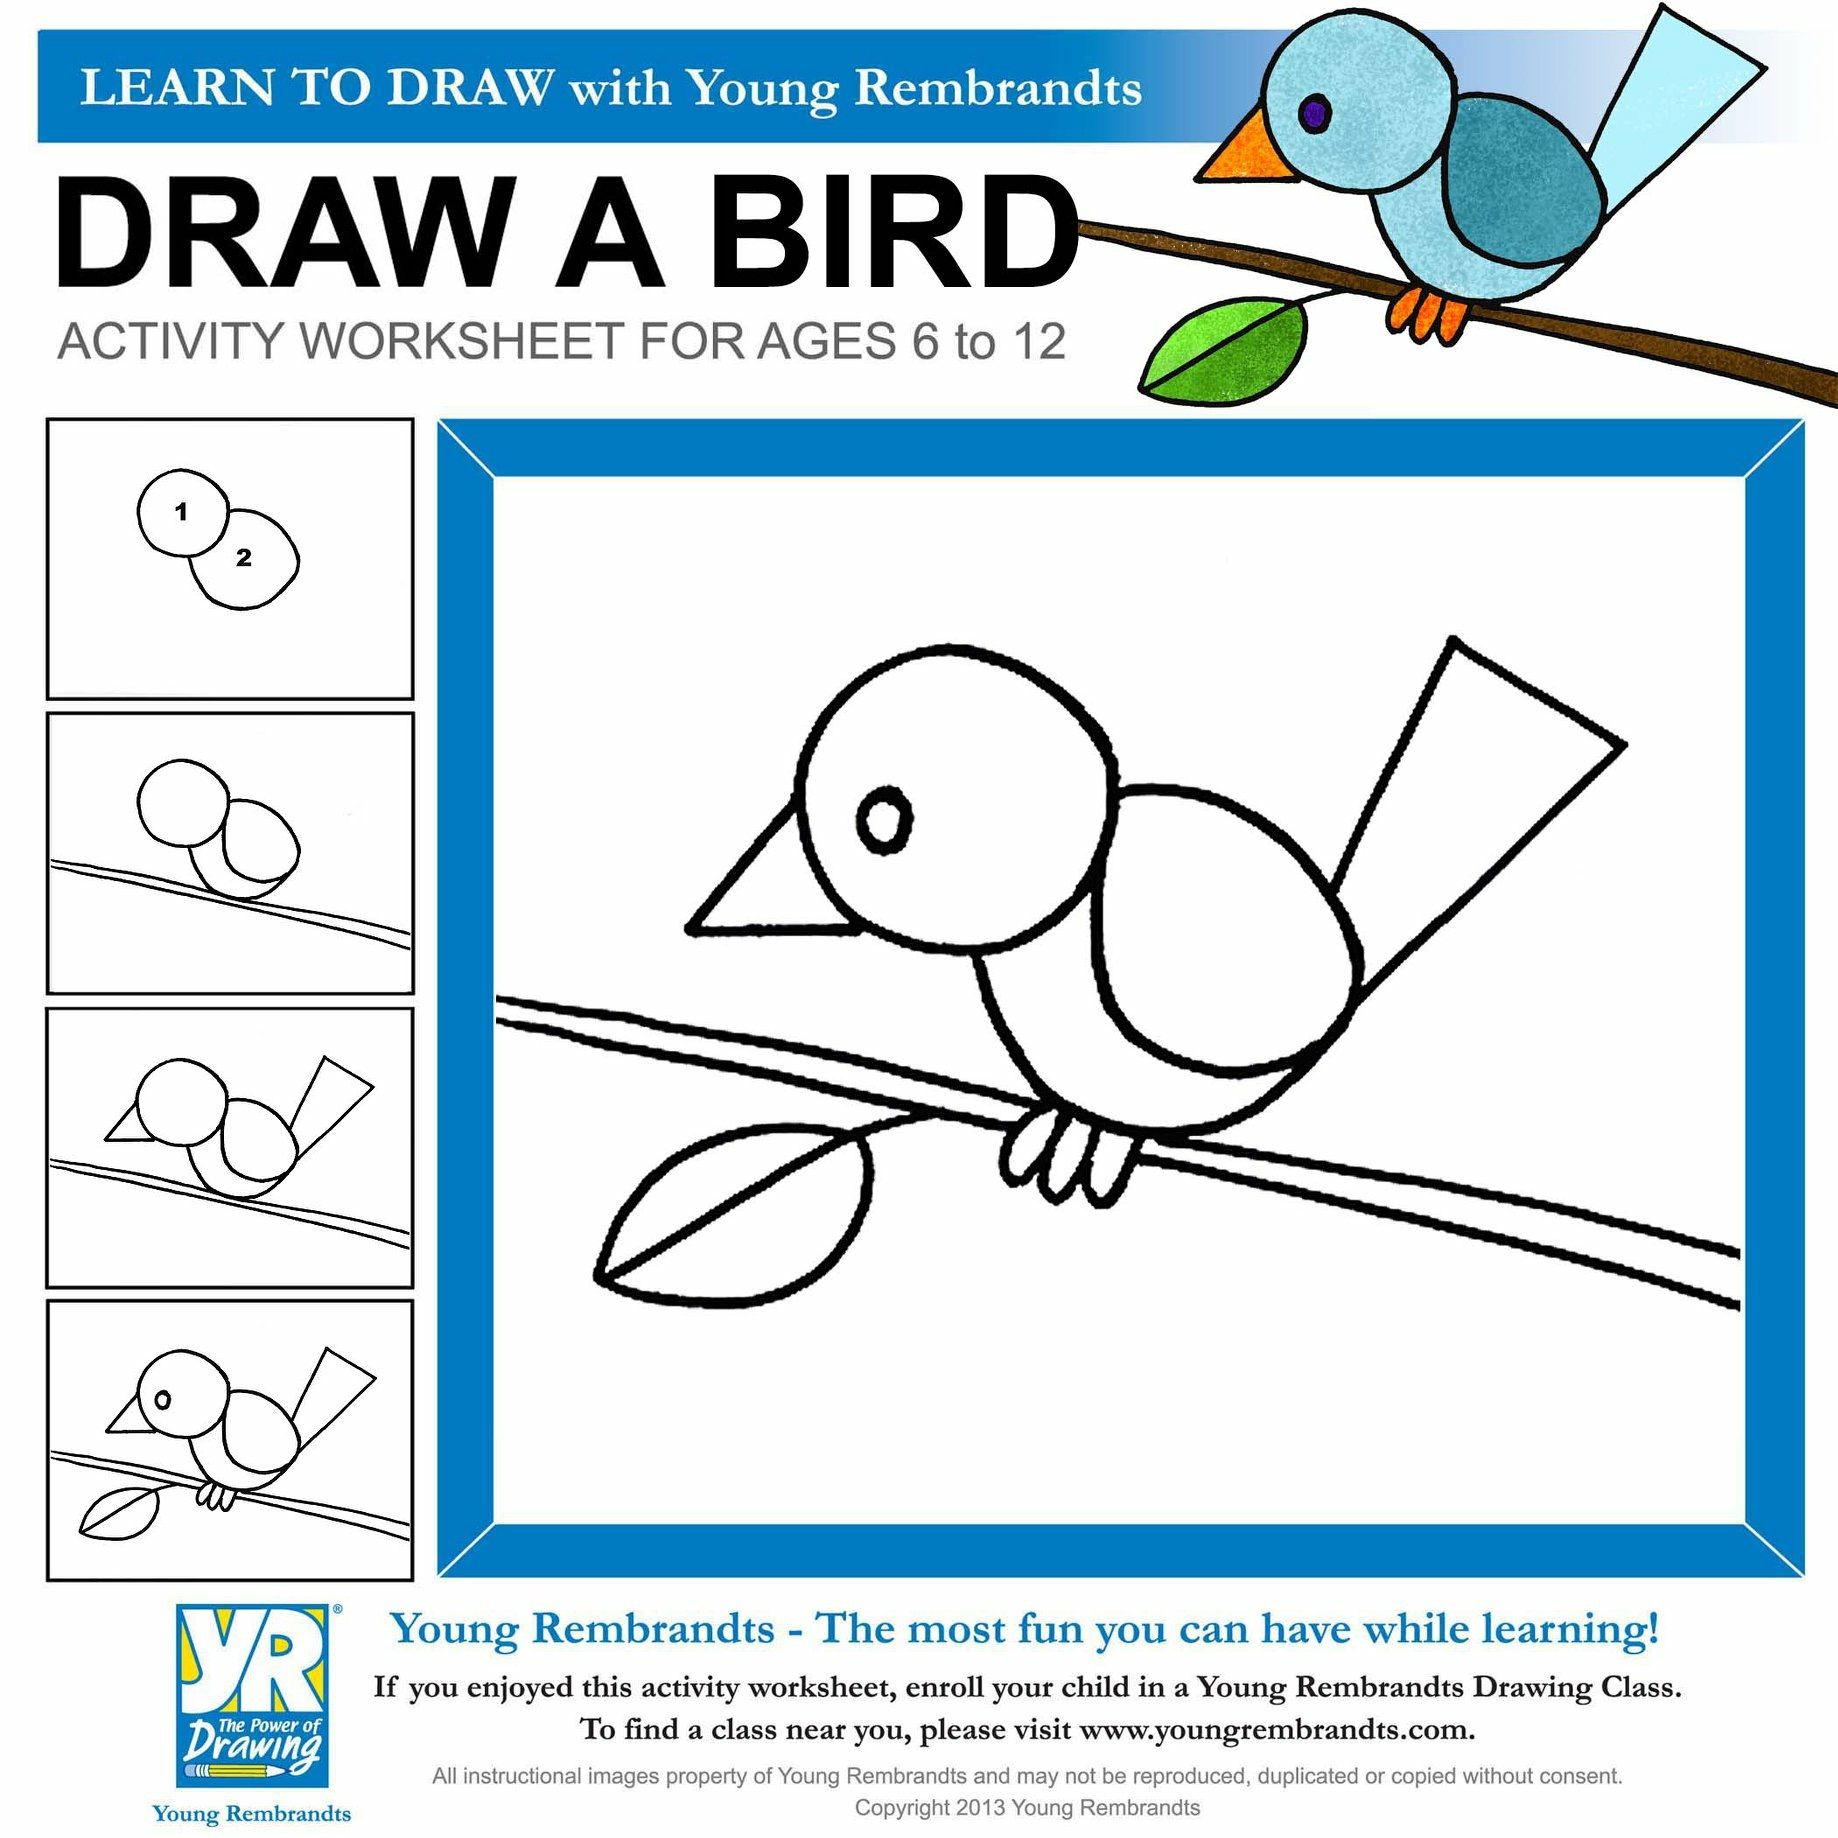 Young Rembrandts | Bird drawings, Drawing class, Rembrandt drawings